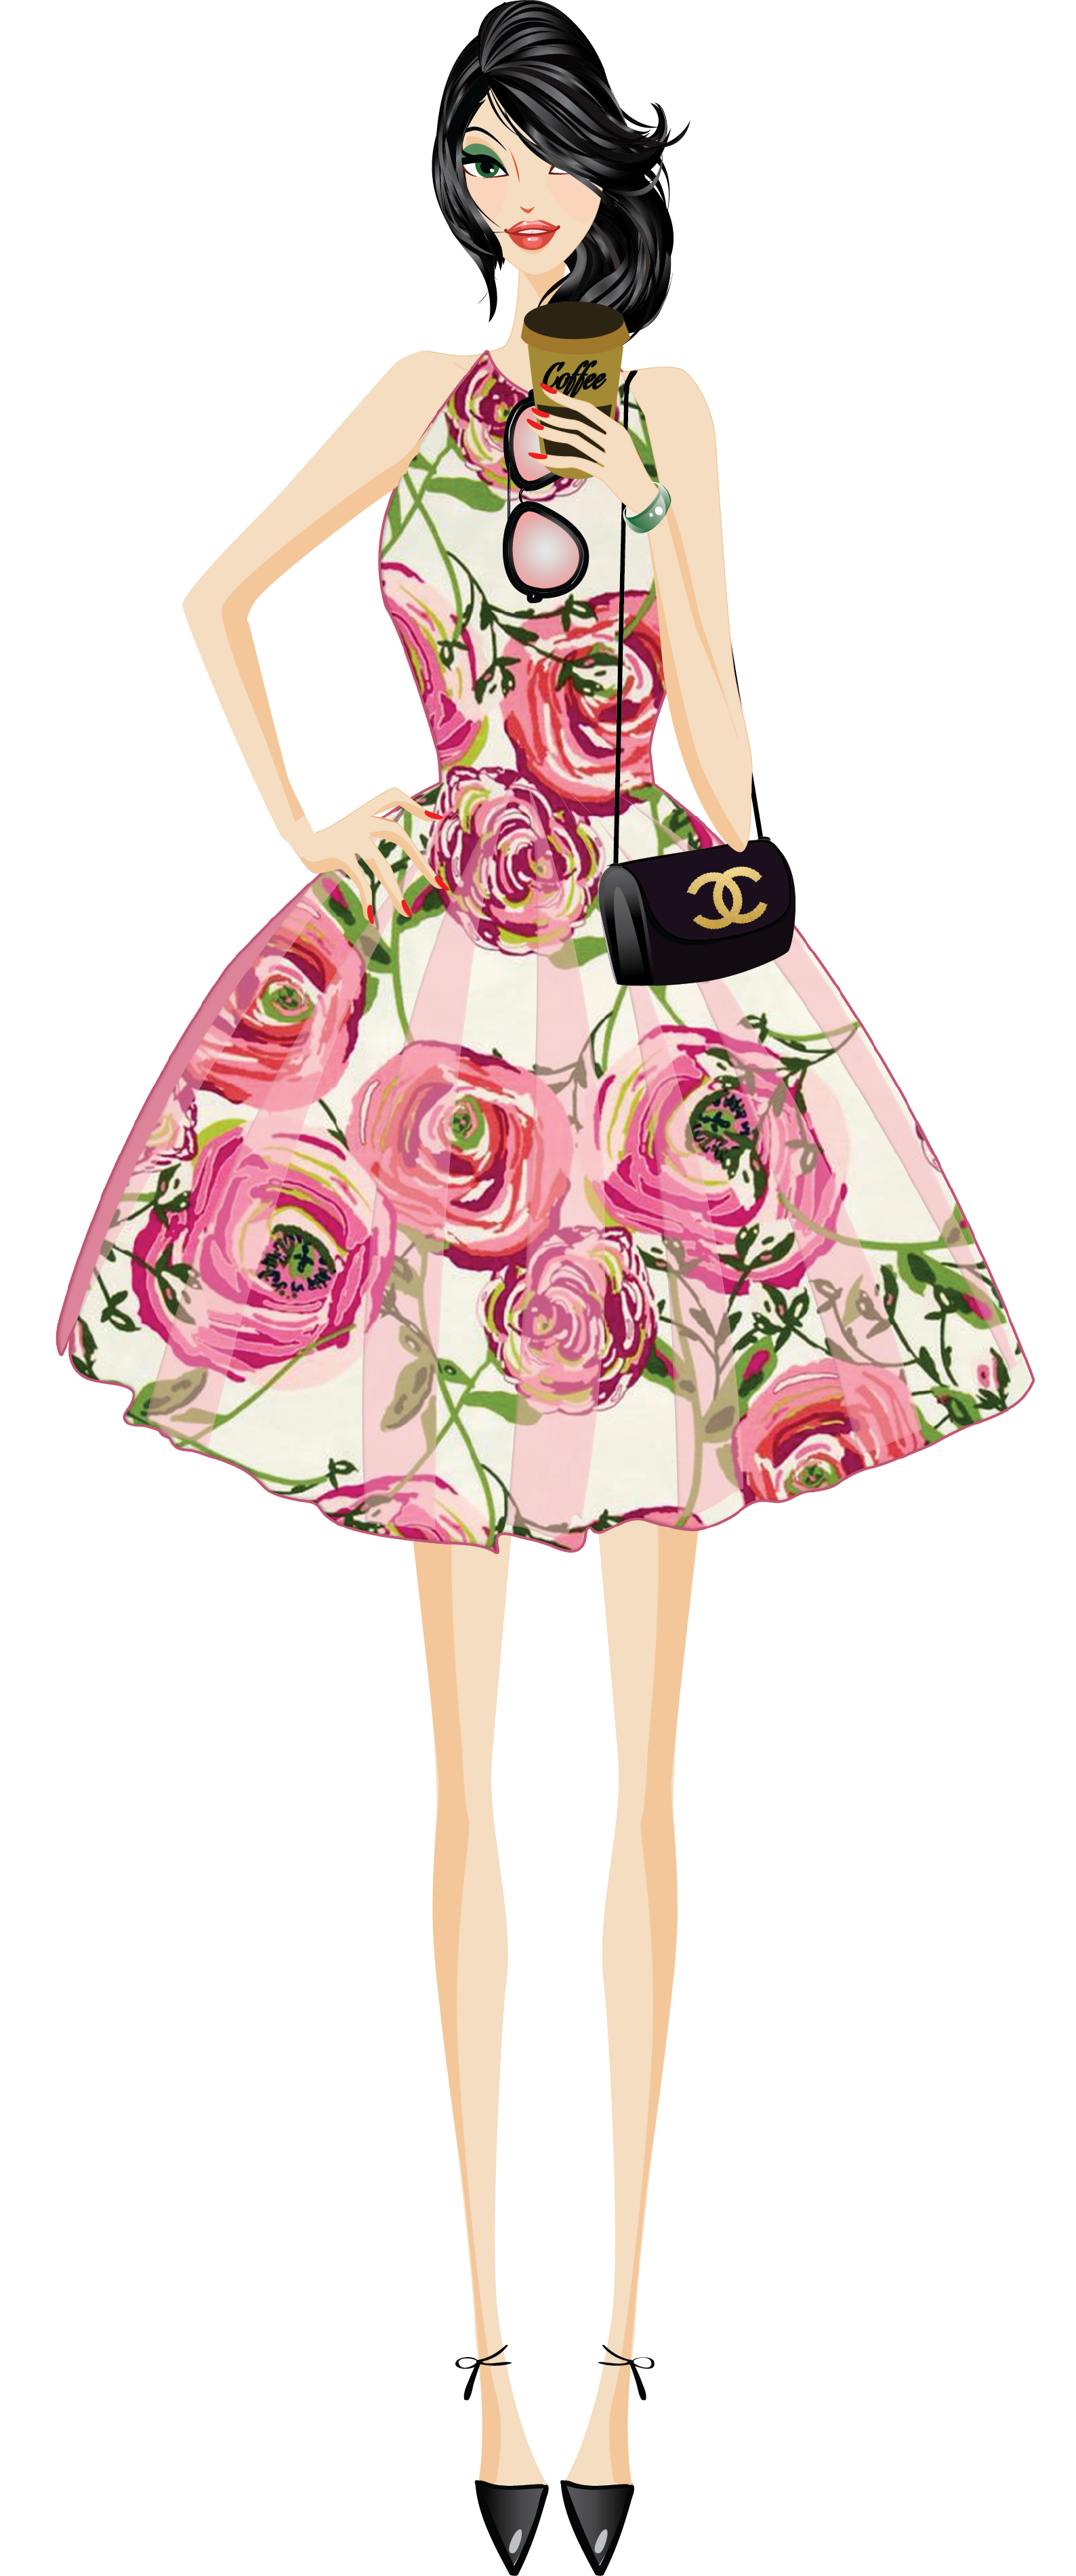 fashionista drawing pink